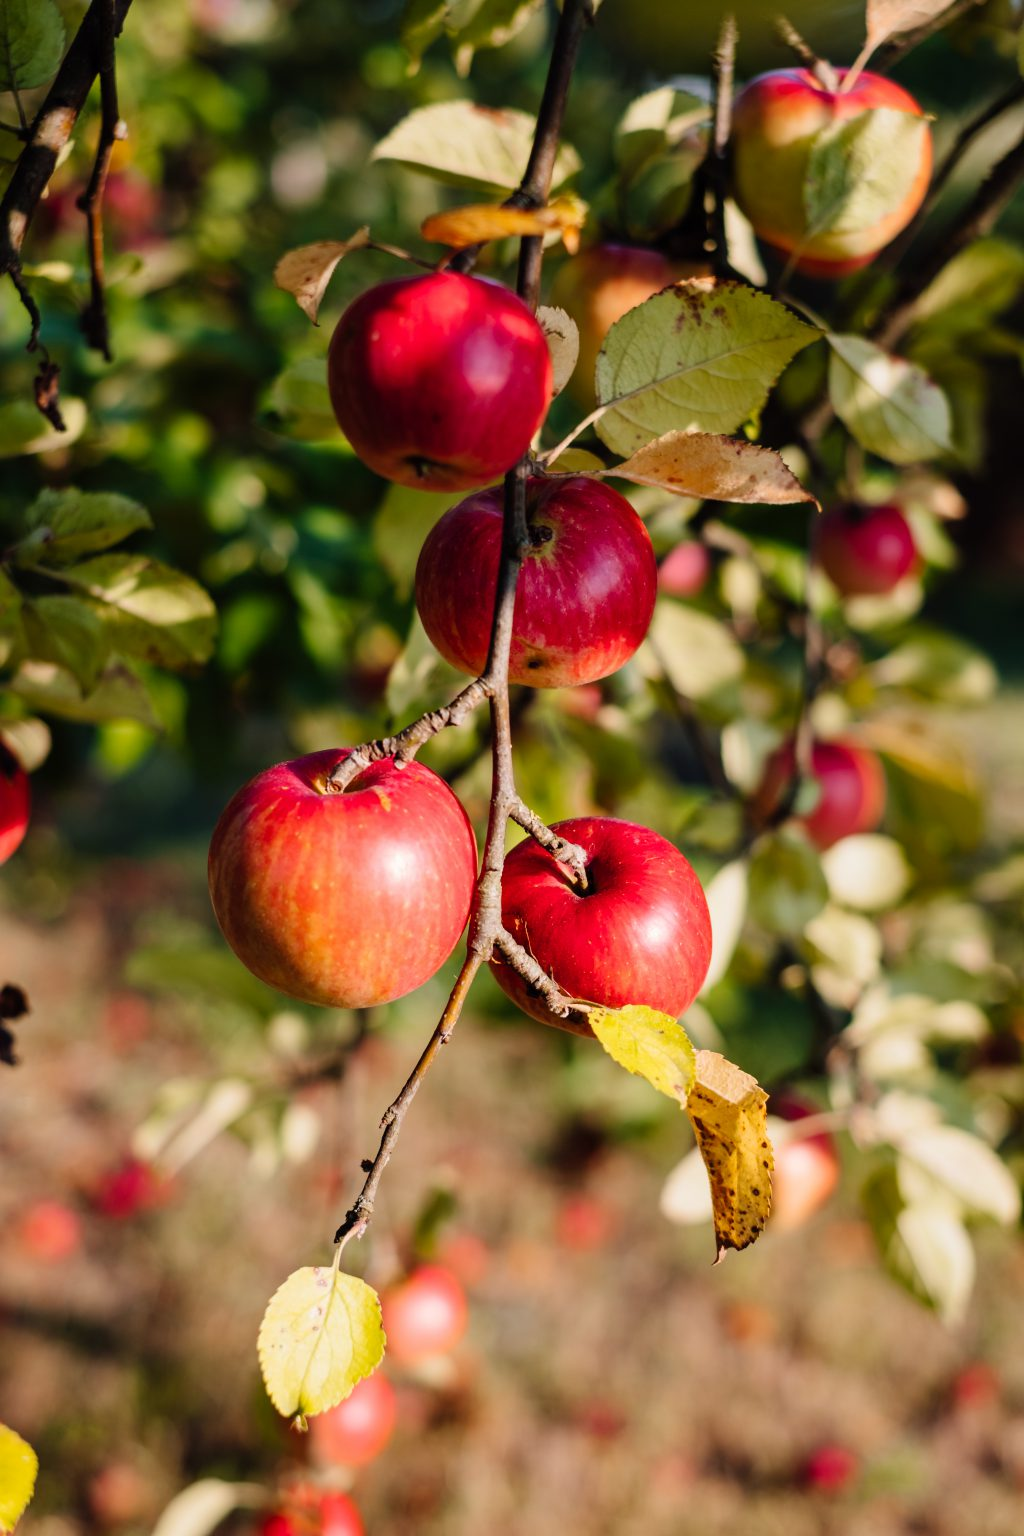 Apples on a tree 7 - free stock photo